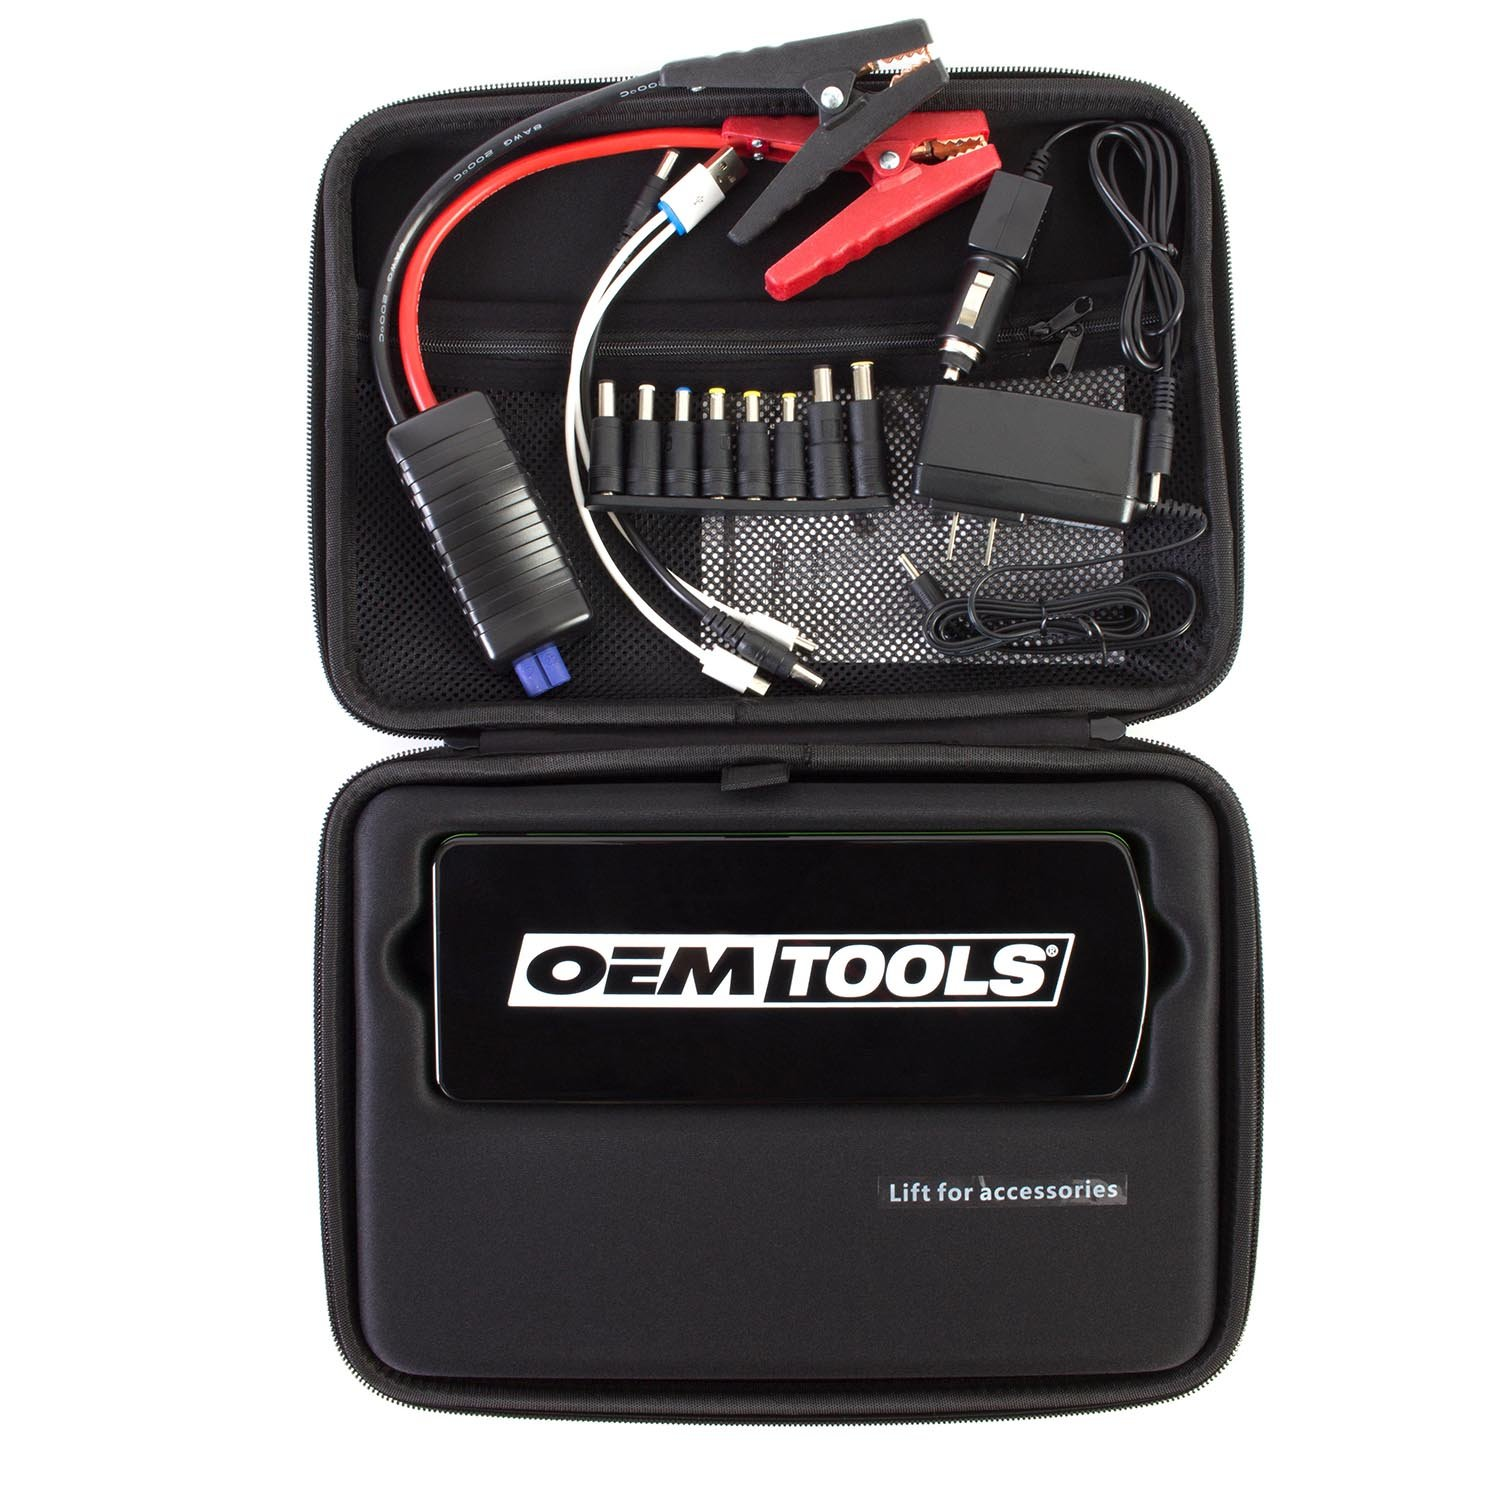 OEMTOOLS 24455 PPS-X Personal Power Source with Smart Jump Cables by OEMTOOLS (Image #5)